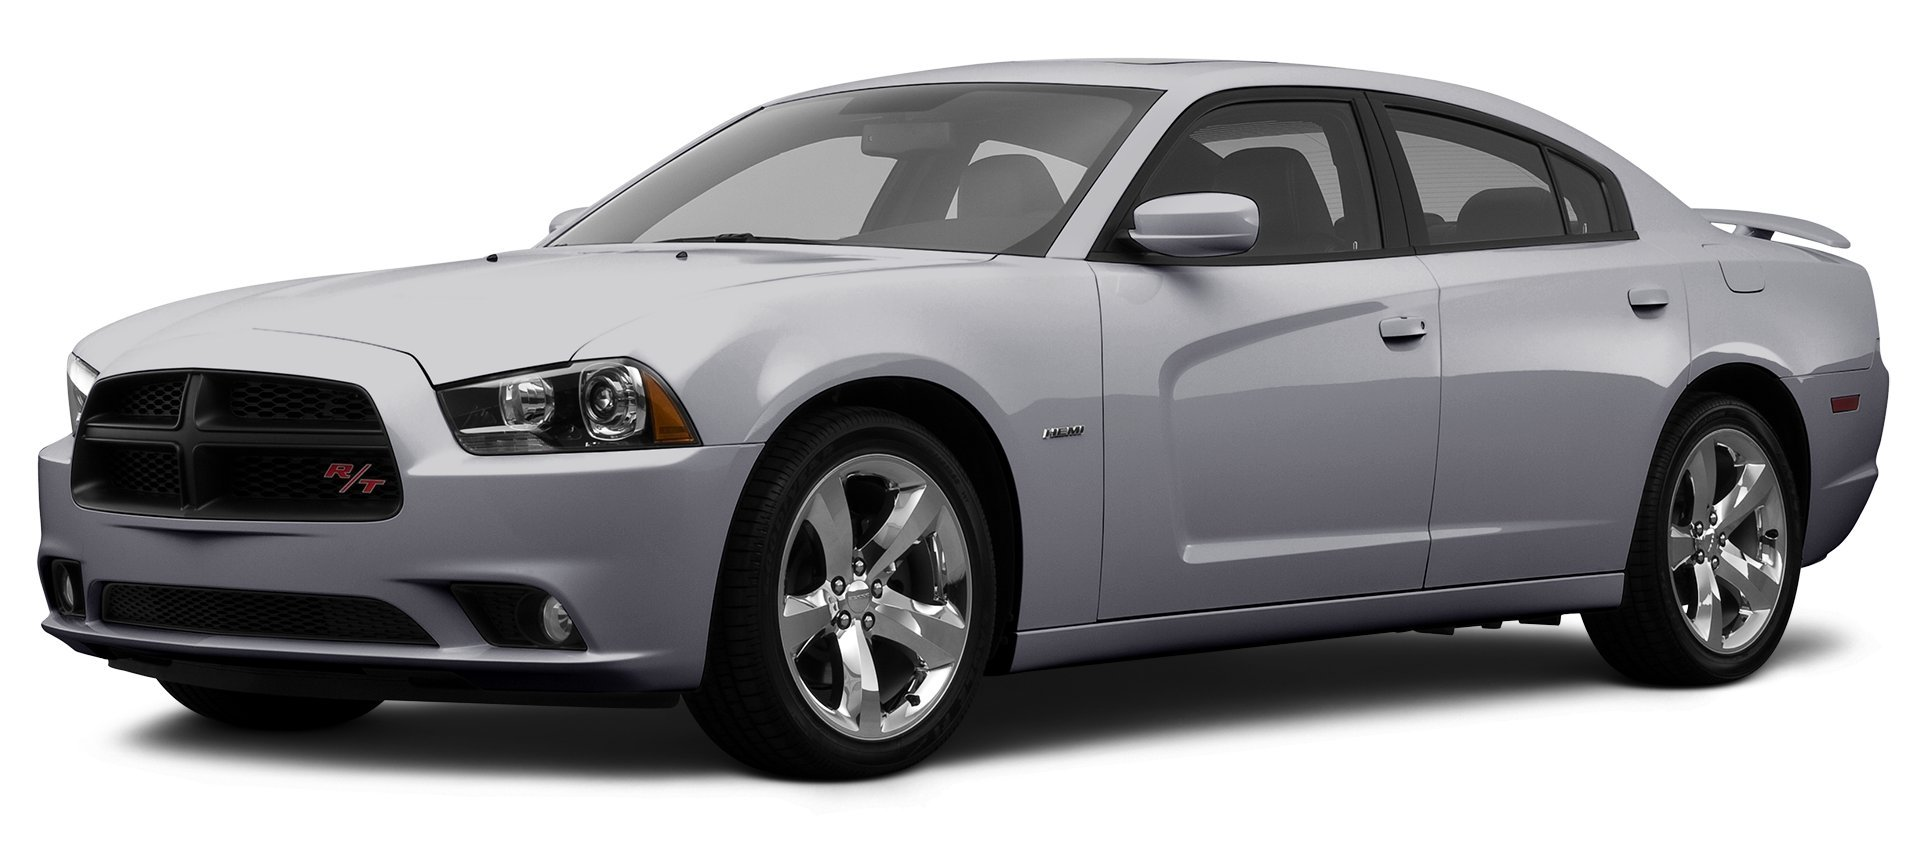 2013 dodge charger rt 4 door sedan all wheel drive - Dodge Charger 2013 Rt